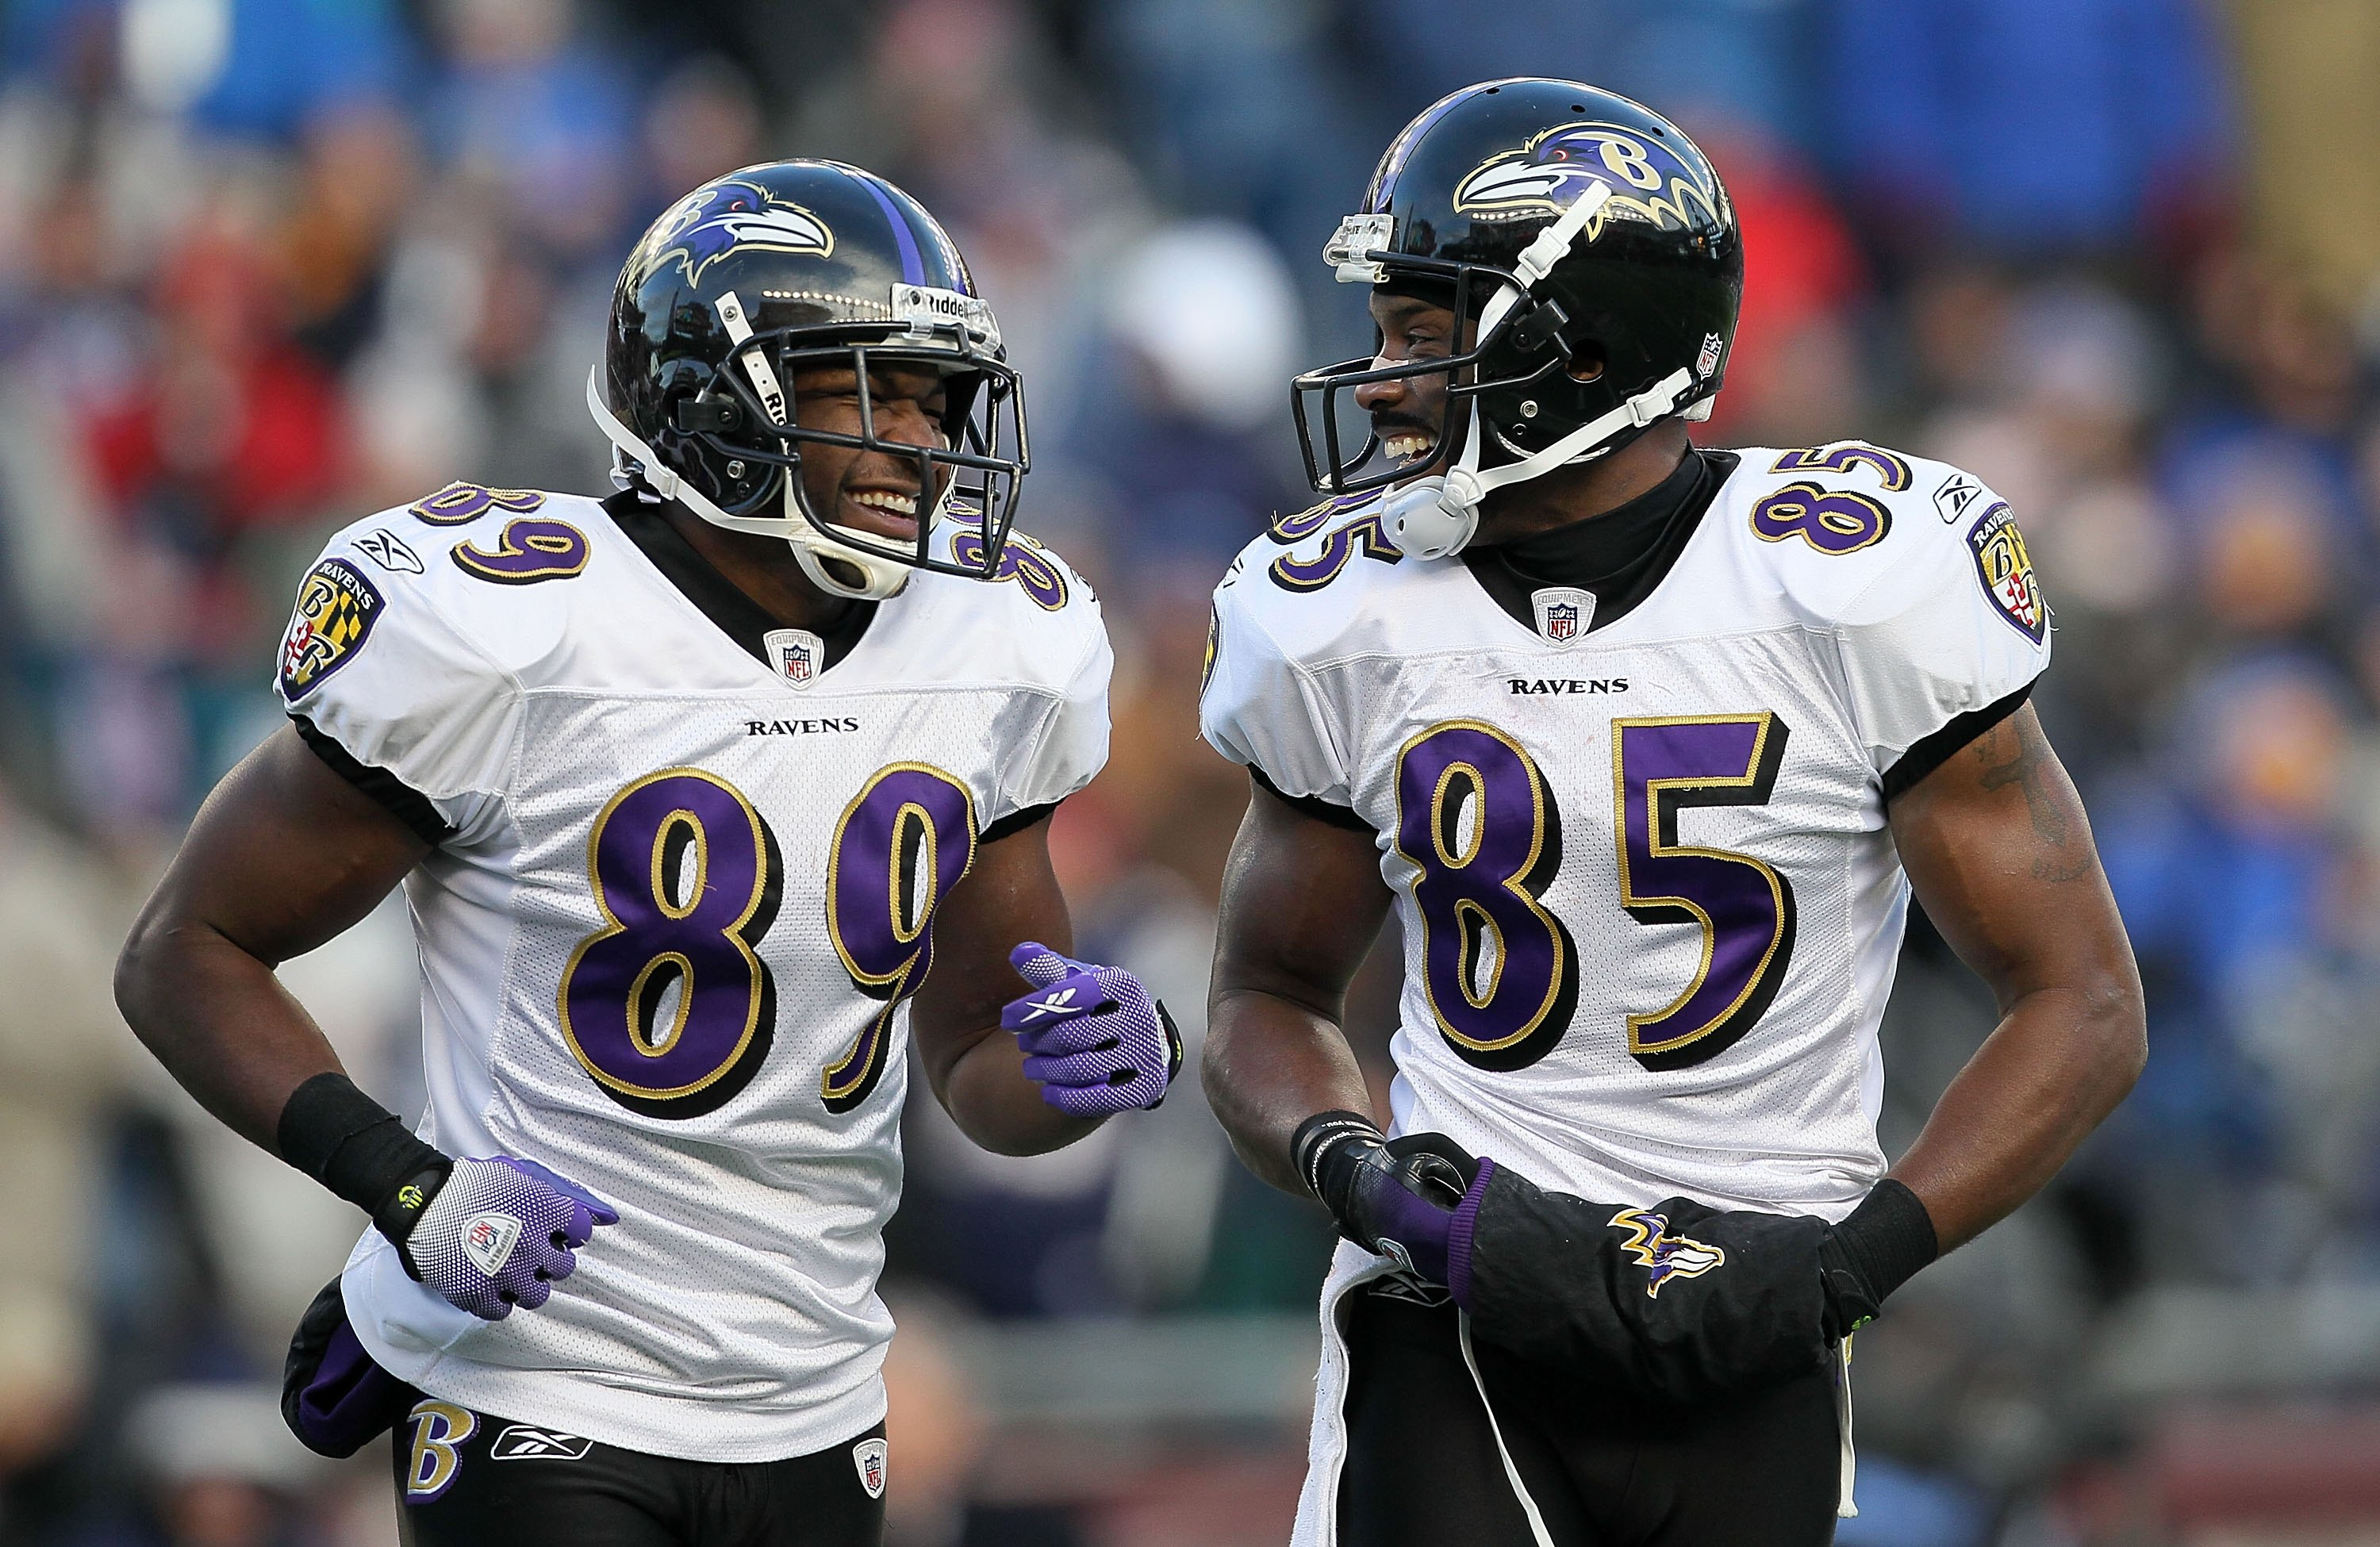 FOXBORO, MA - JANUARY 10:  (L-R) Mark Clayton #89 and Derrick Mason #85 of the Baltimore Ravens talk on the field against the New England Patriots during the 2010 AFC wild-card playoff game at Gillette Stadium on January 10, 2010 in Foxboro, Massachusetts